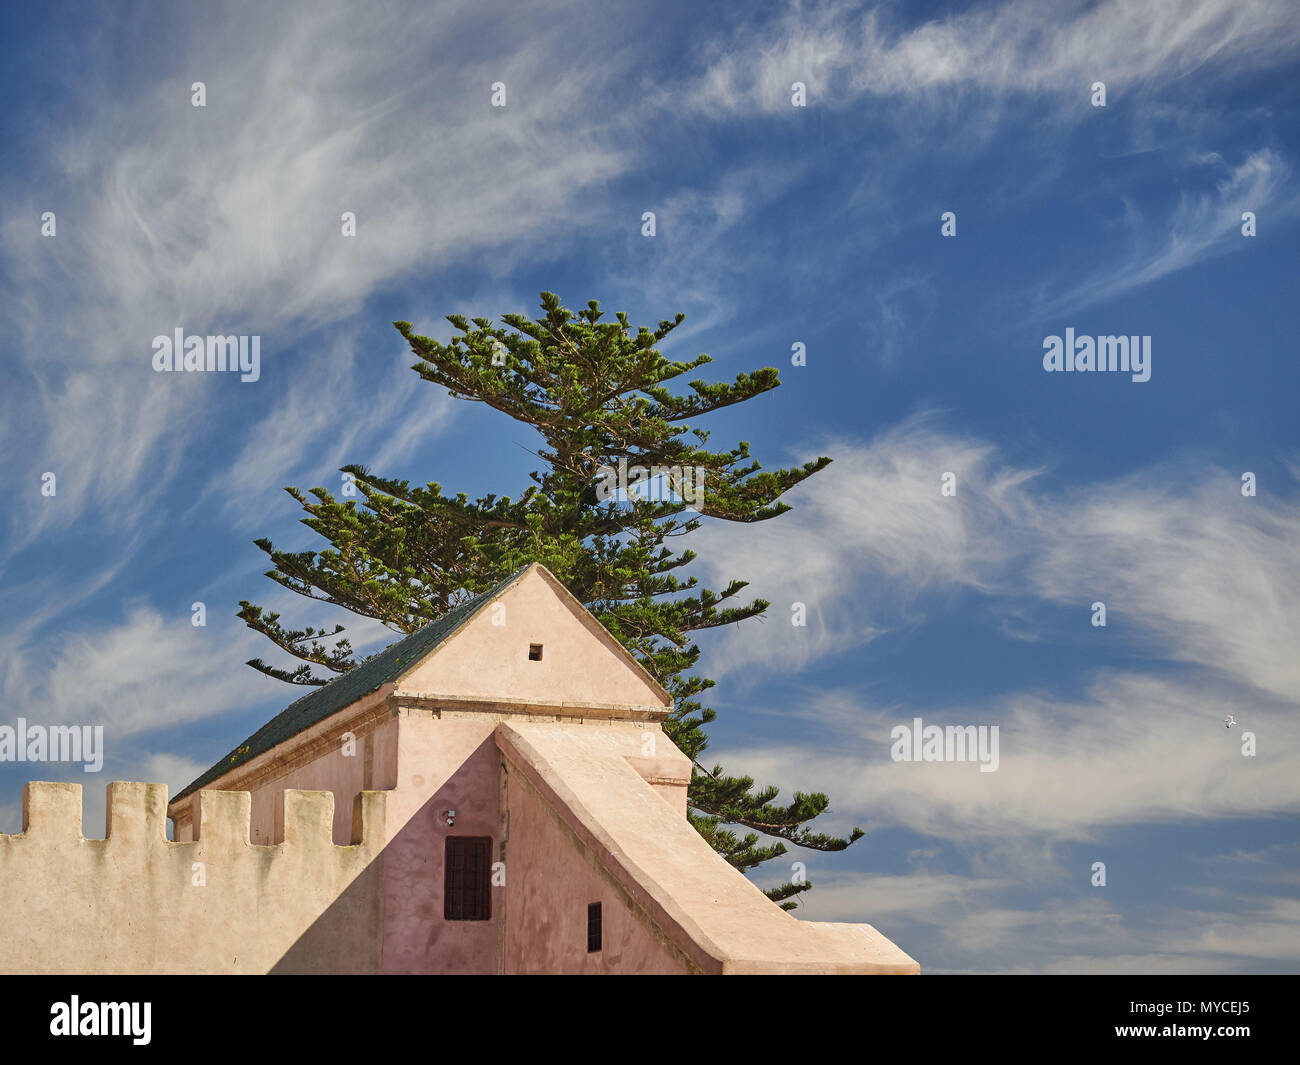 Top of the yellow house, over the roof of a huge coniferous tree against a blue sky background with white clouds divorces. - Stock Image